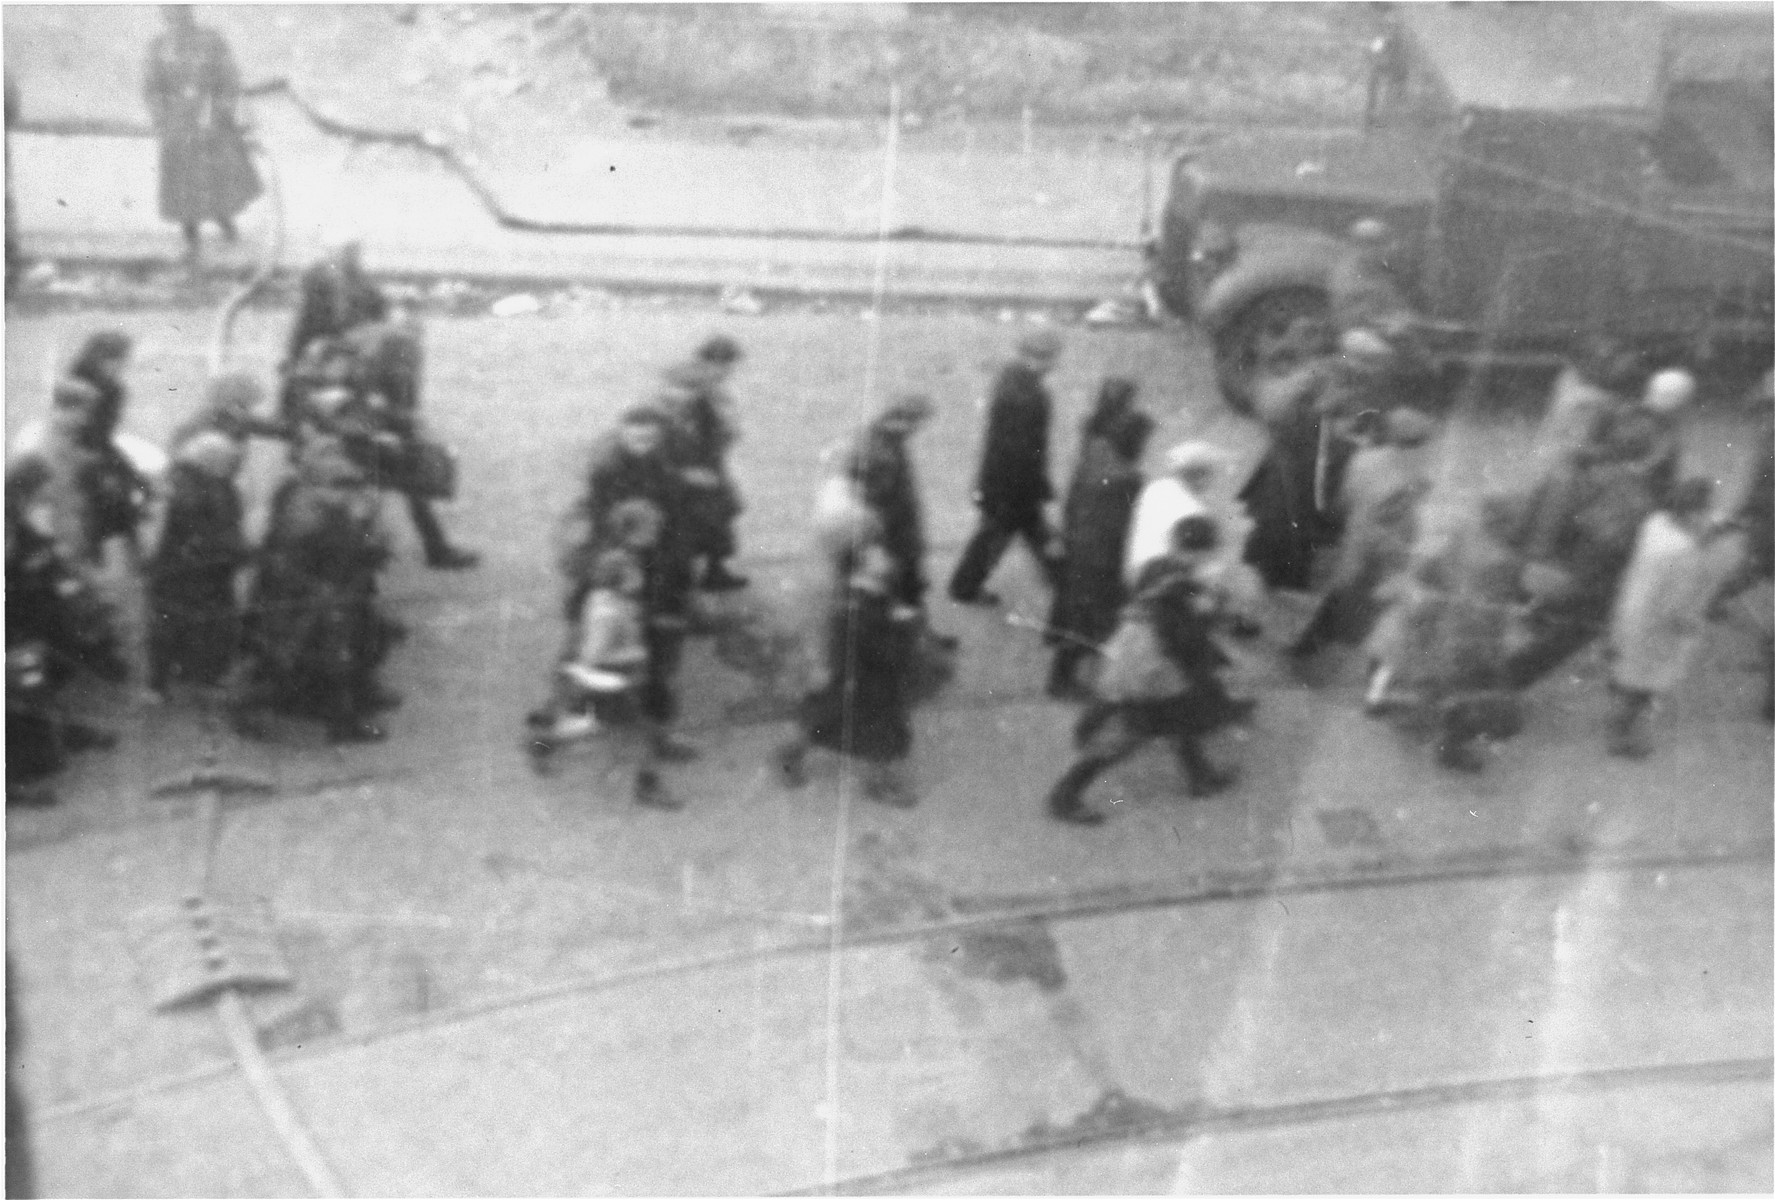 Jews captured by the SS during the suppression of the Warsaw ghetto uprising march down Nowolipie and Zelazna Street to the Umschlagplatz for deportation.